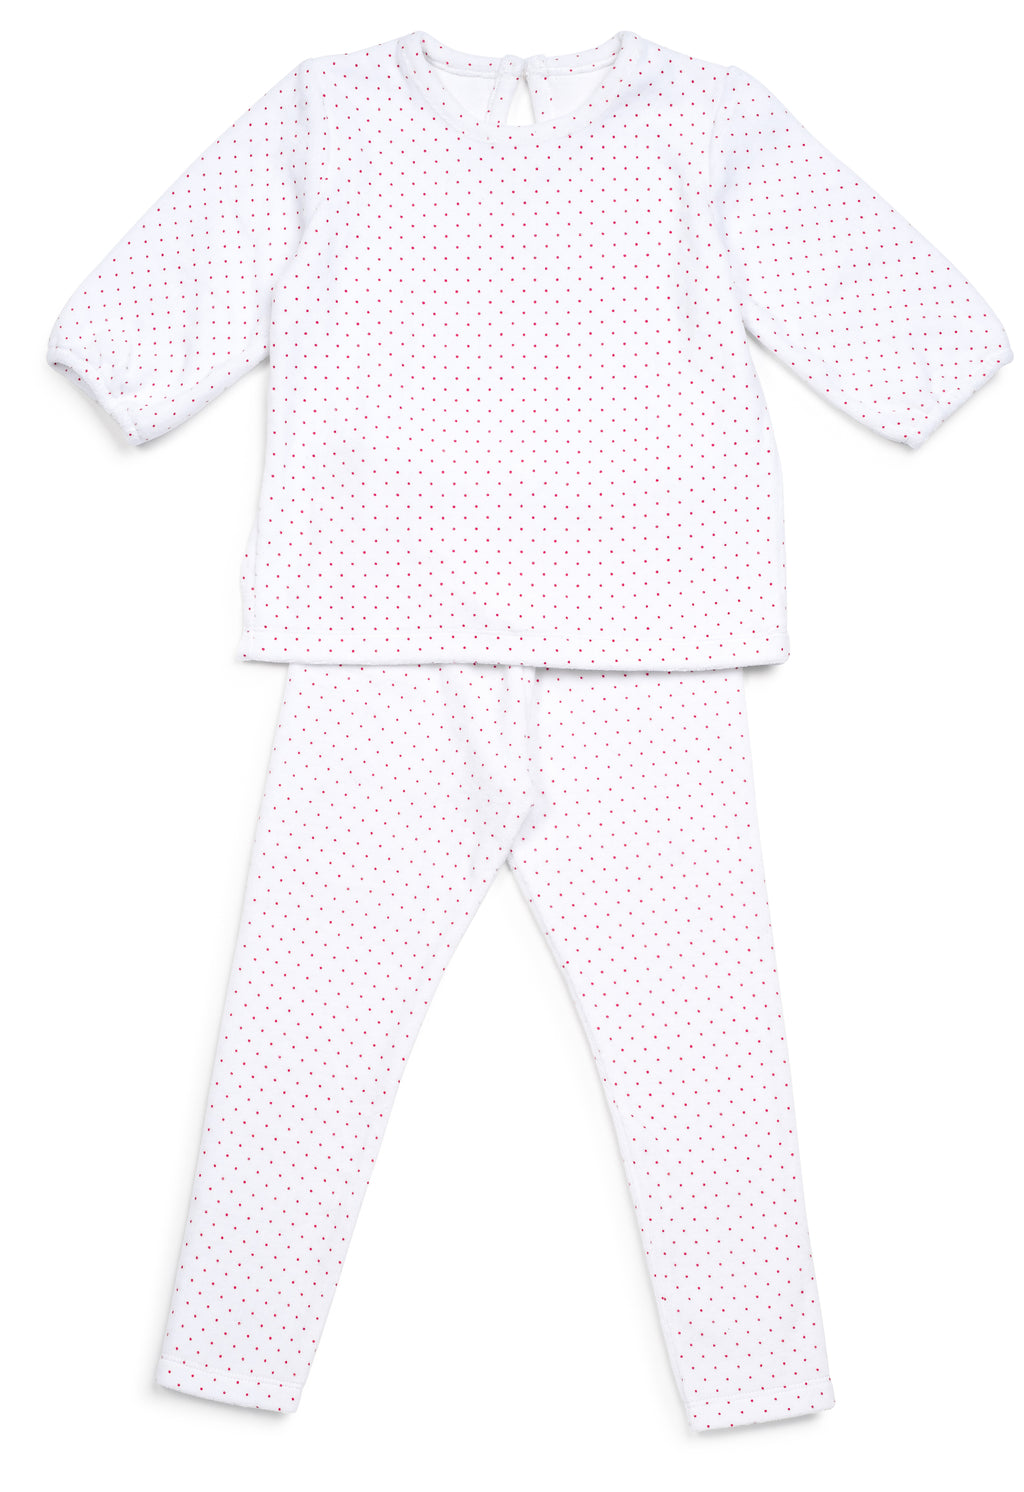 Velour Red Dotted Pajamas - Mouche Kids